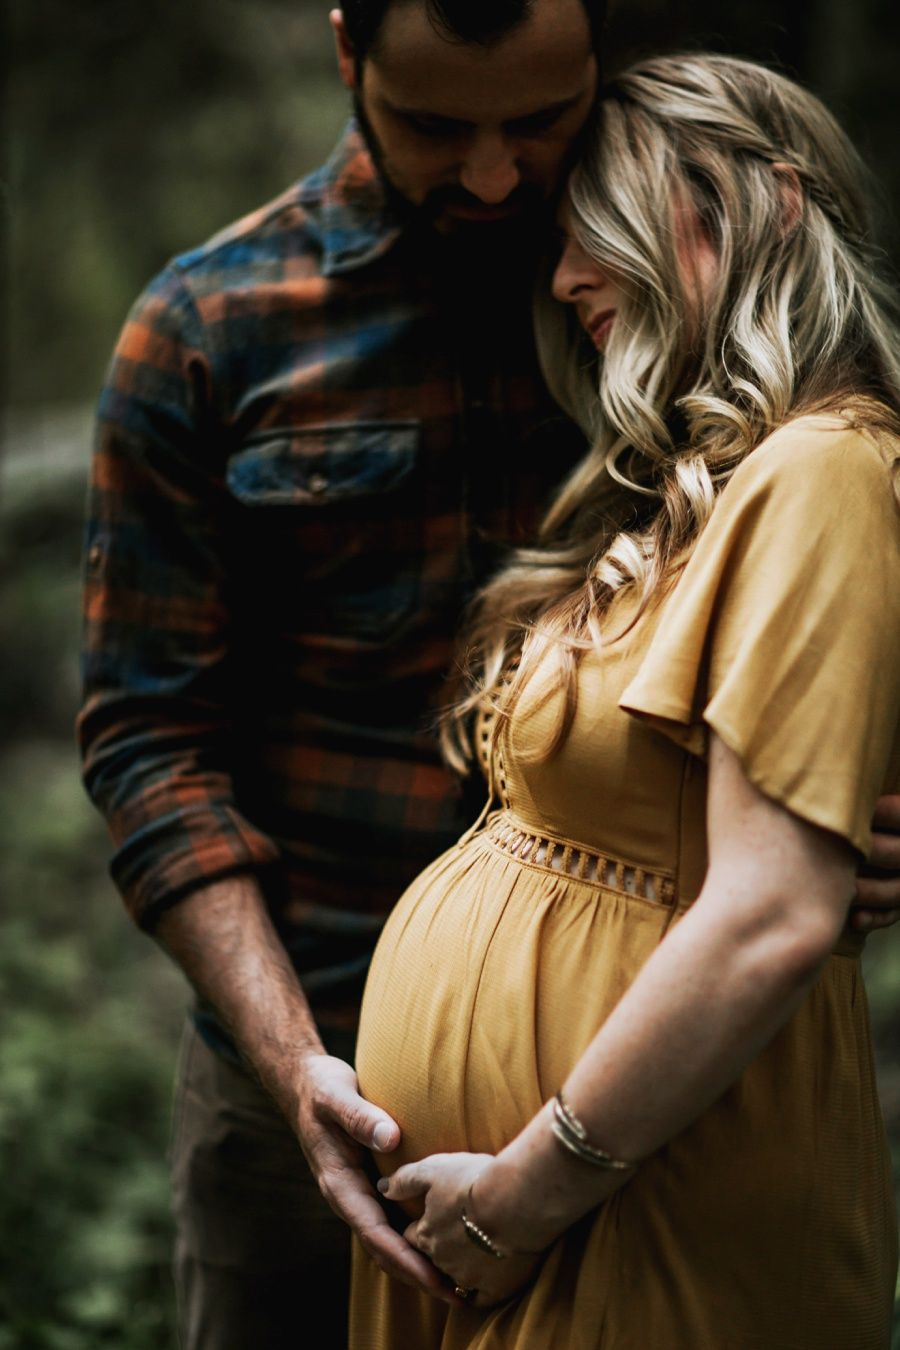 Couples for photoshoot ideas pregnant Maternity Pregnancy